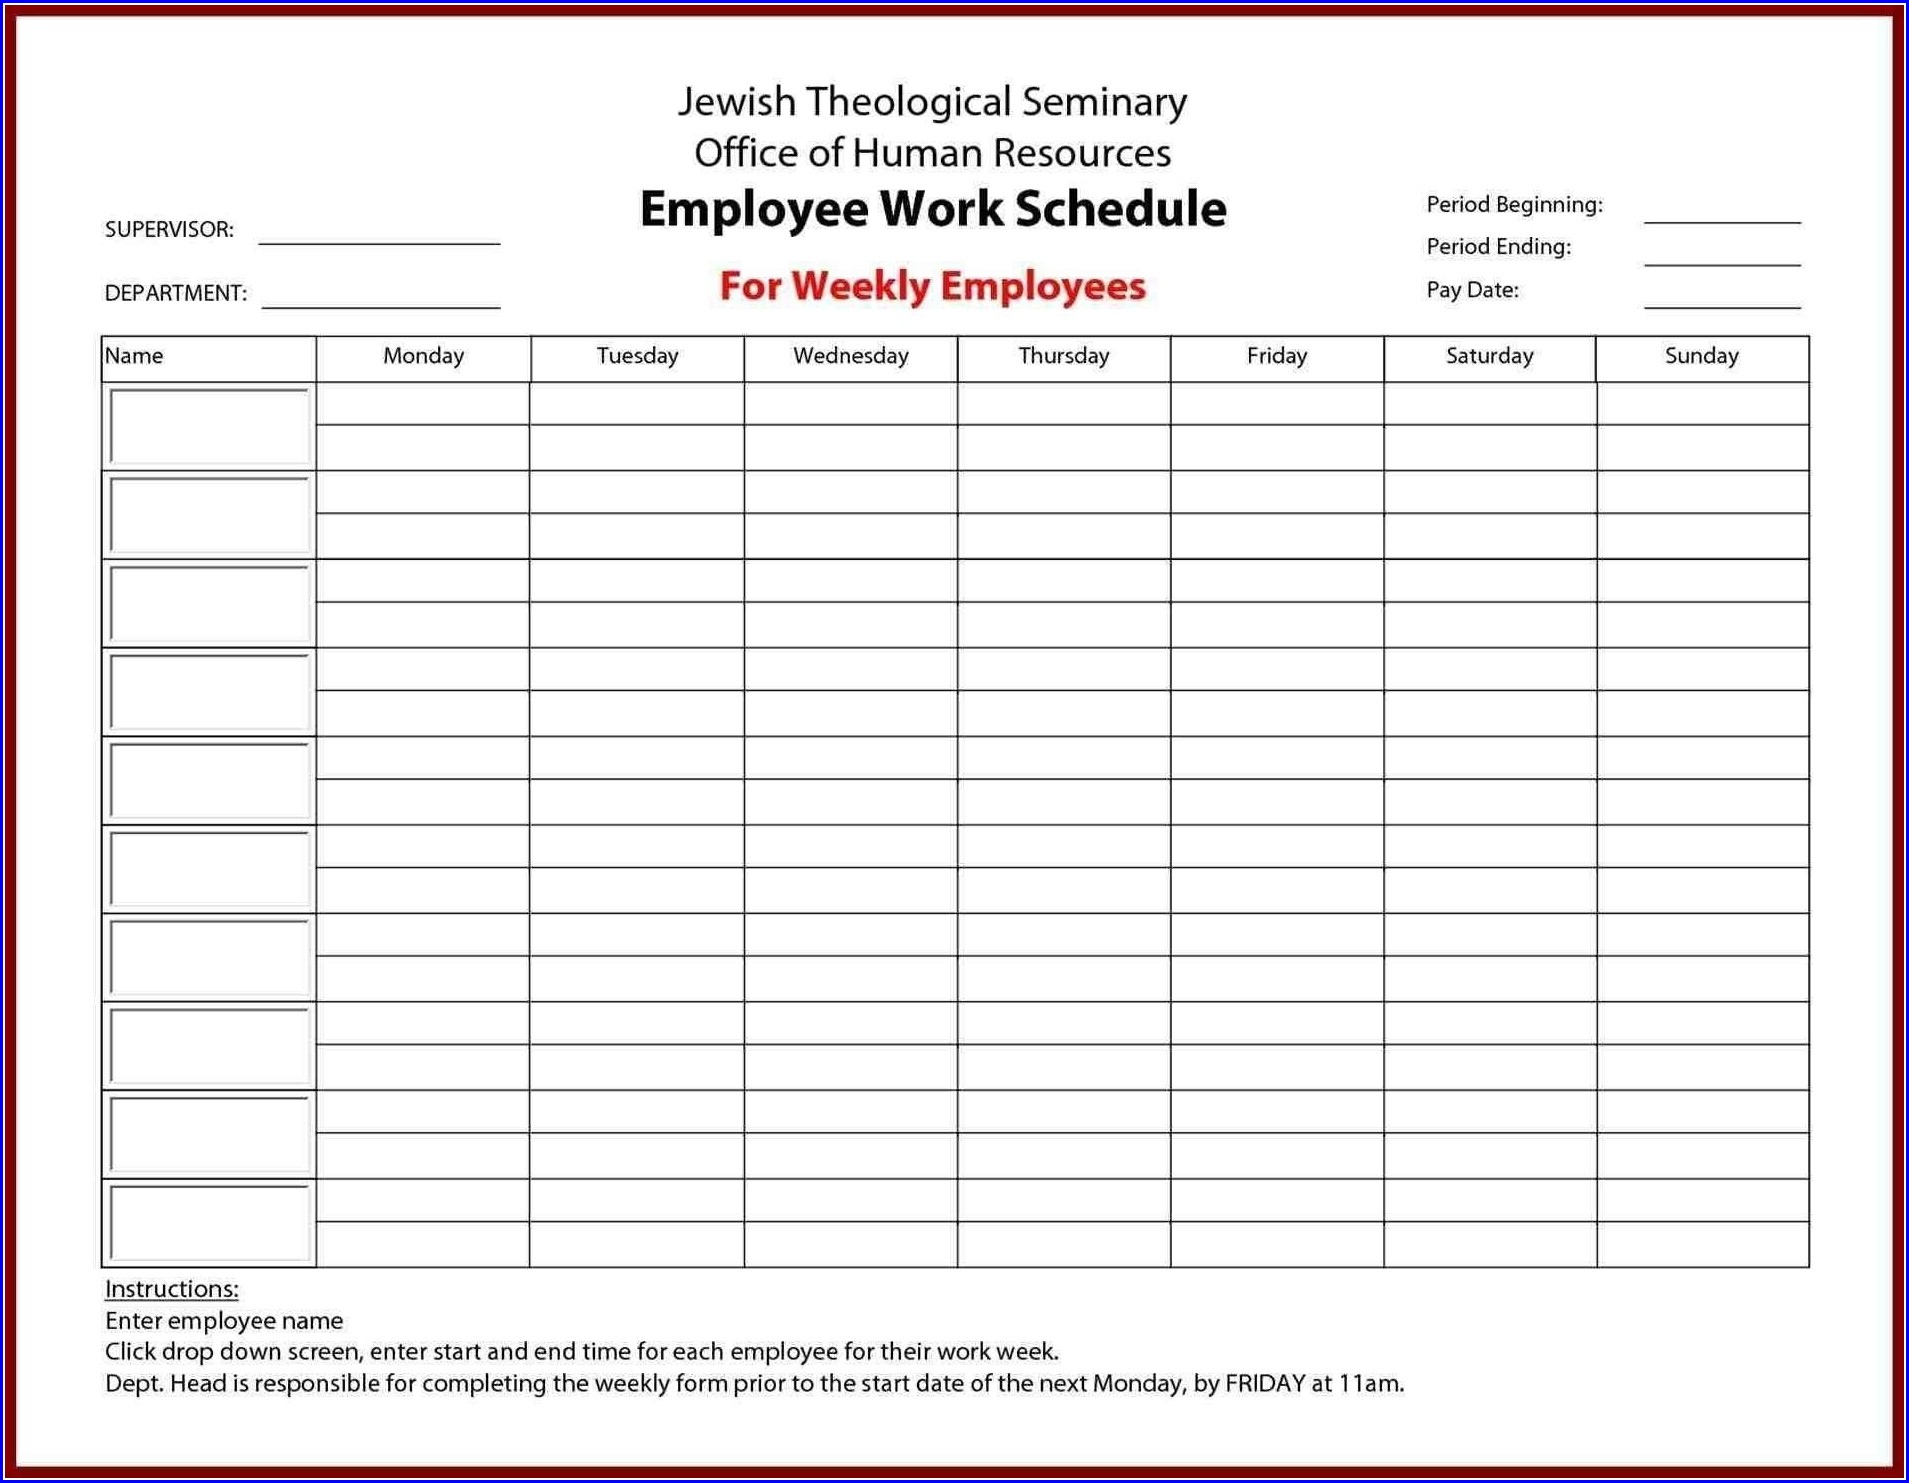 Staffing Schedule Weekly Work Schedule Template